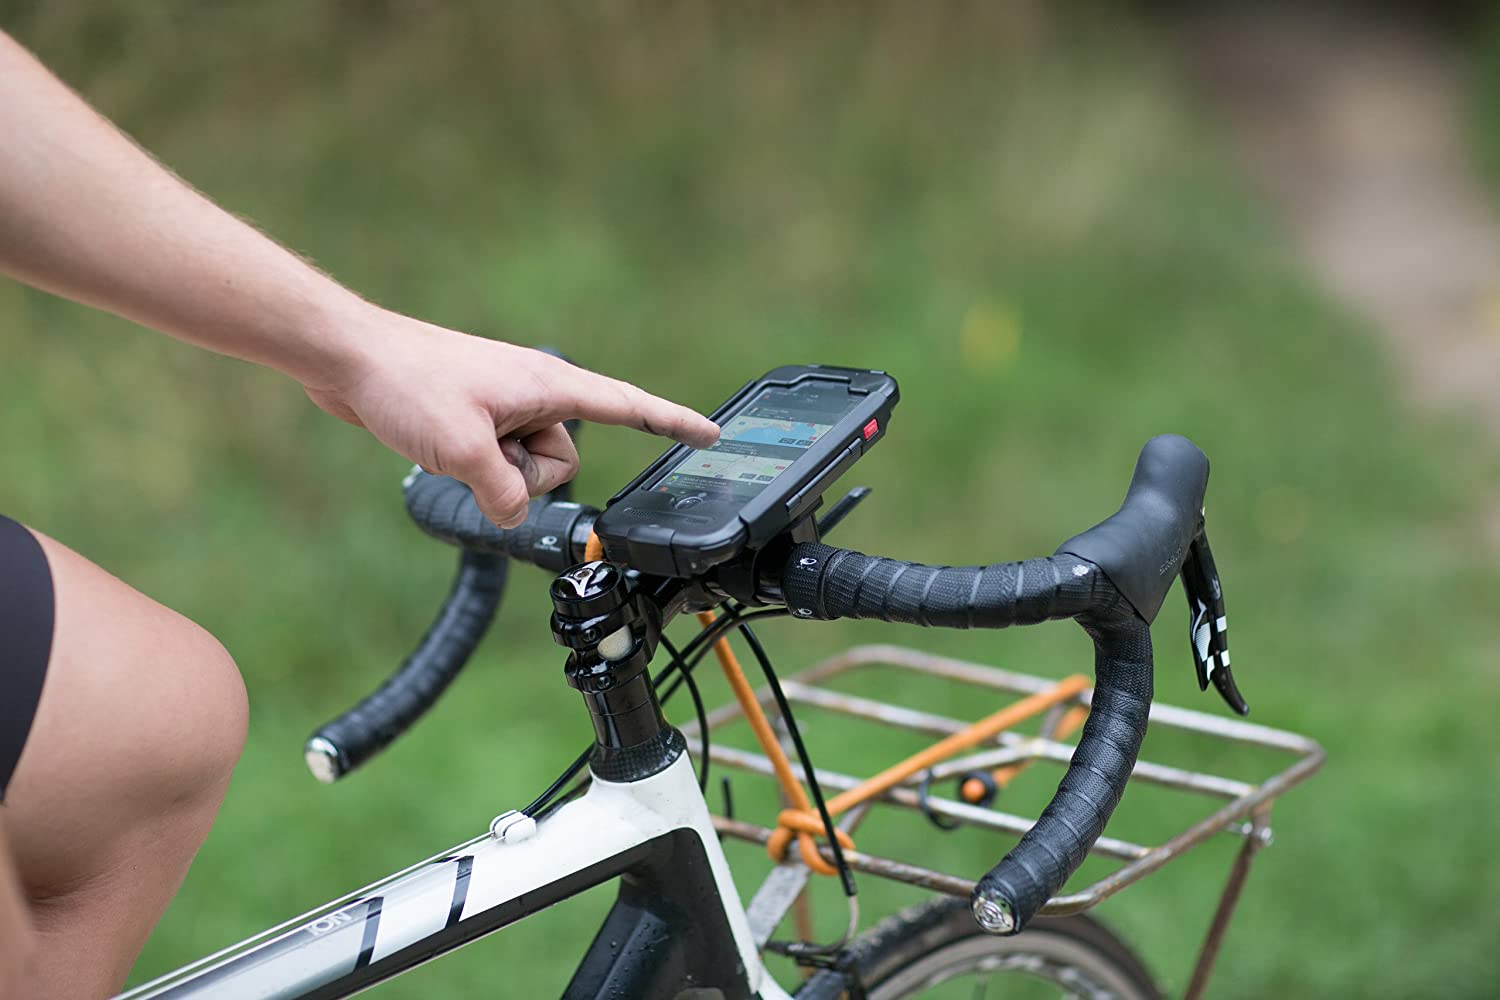 reputable site d4cf5 e6092 iPhone Guide 4U: Top 5 Best Bike Phone Mount Holder For iPhone 7 and ...